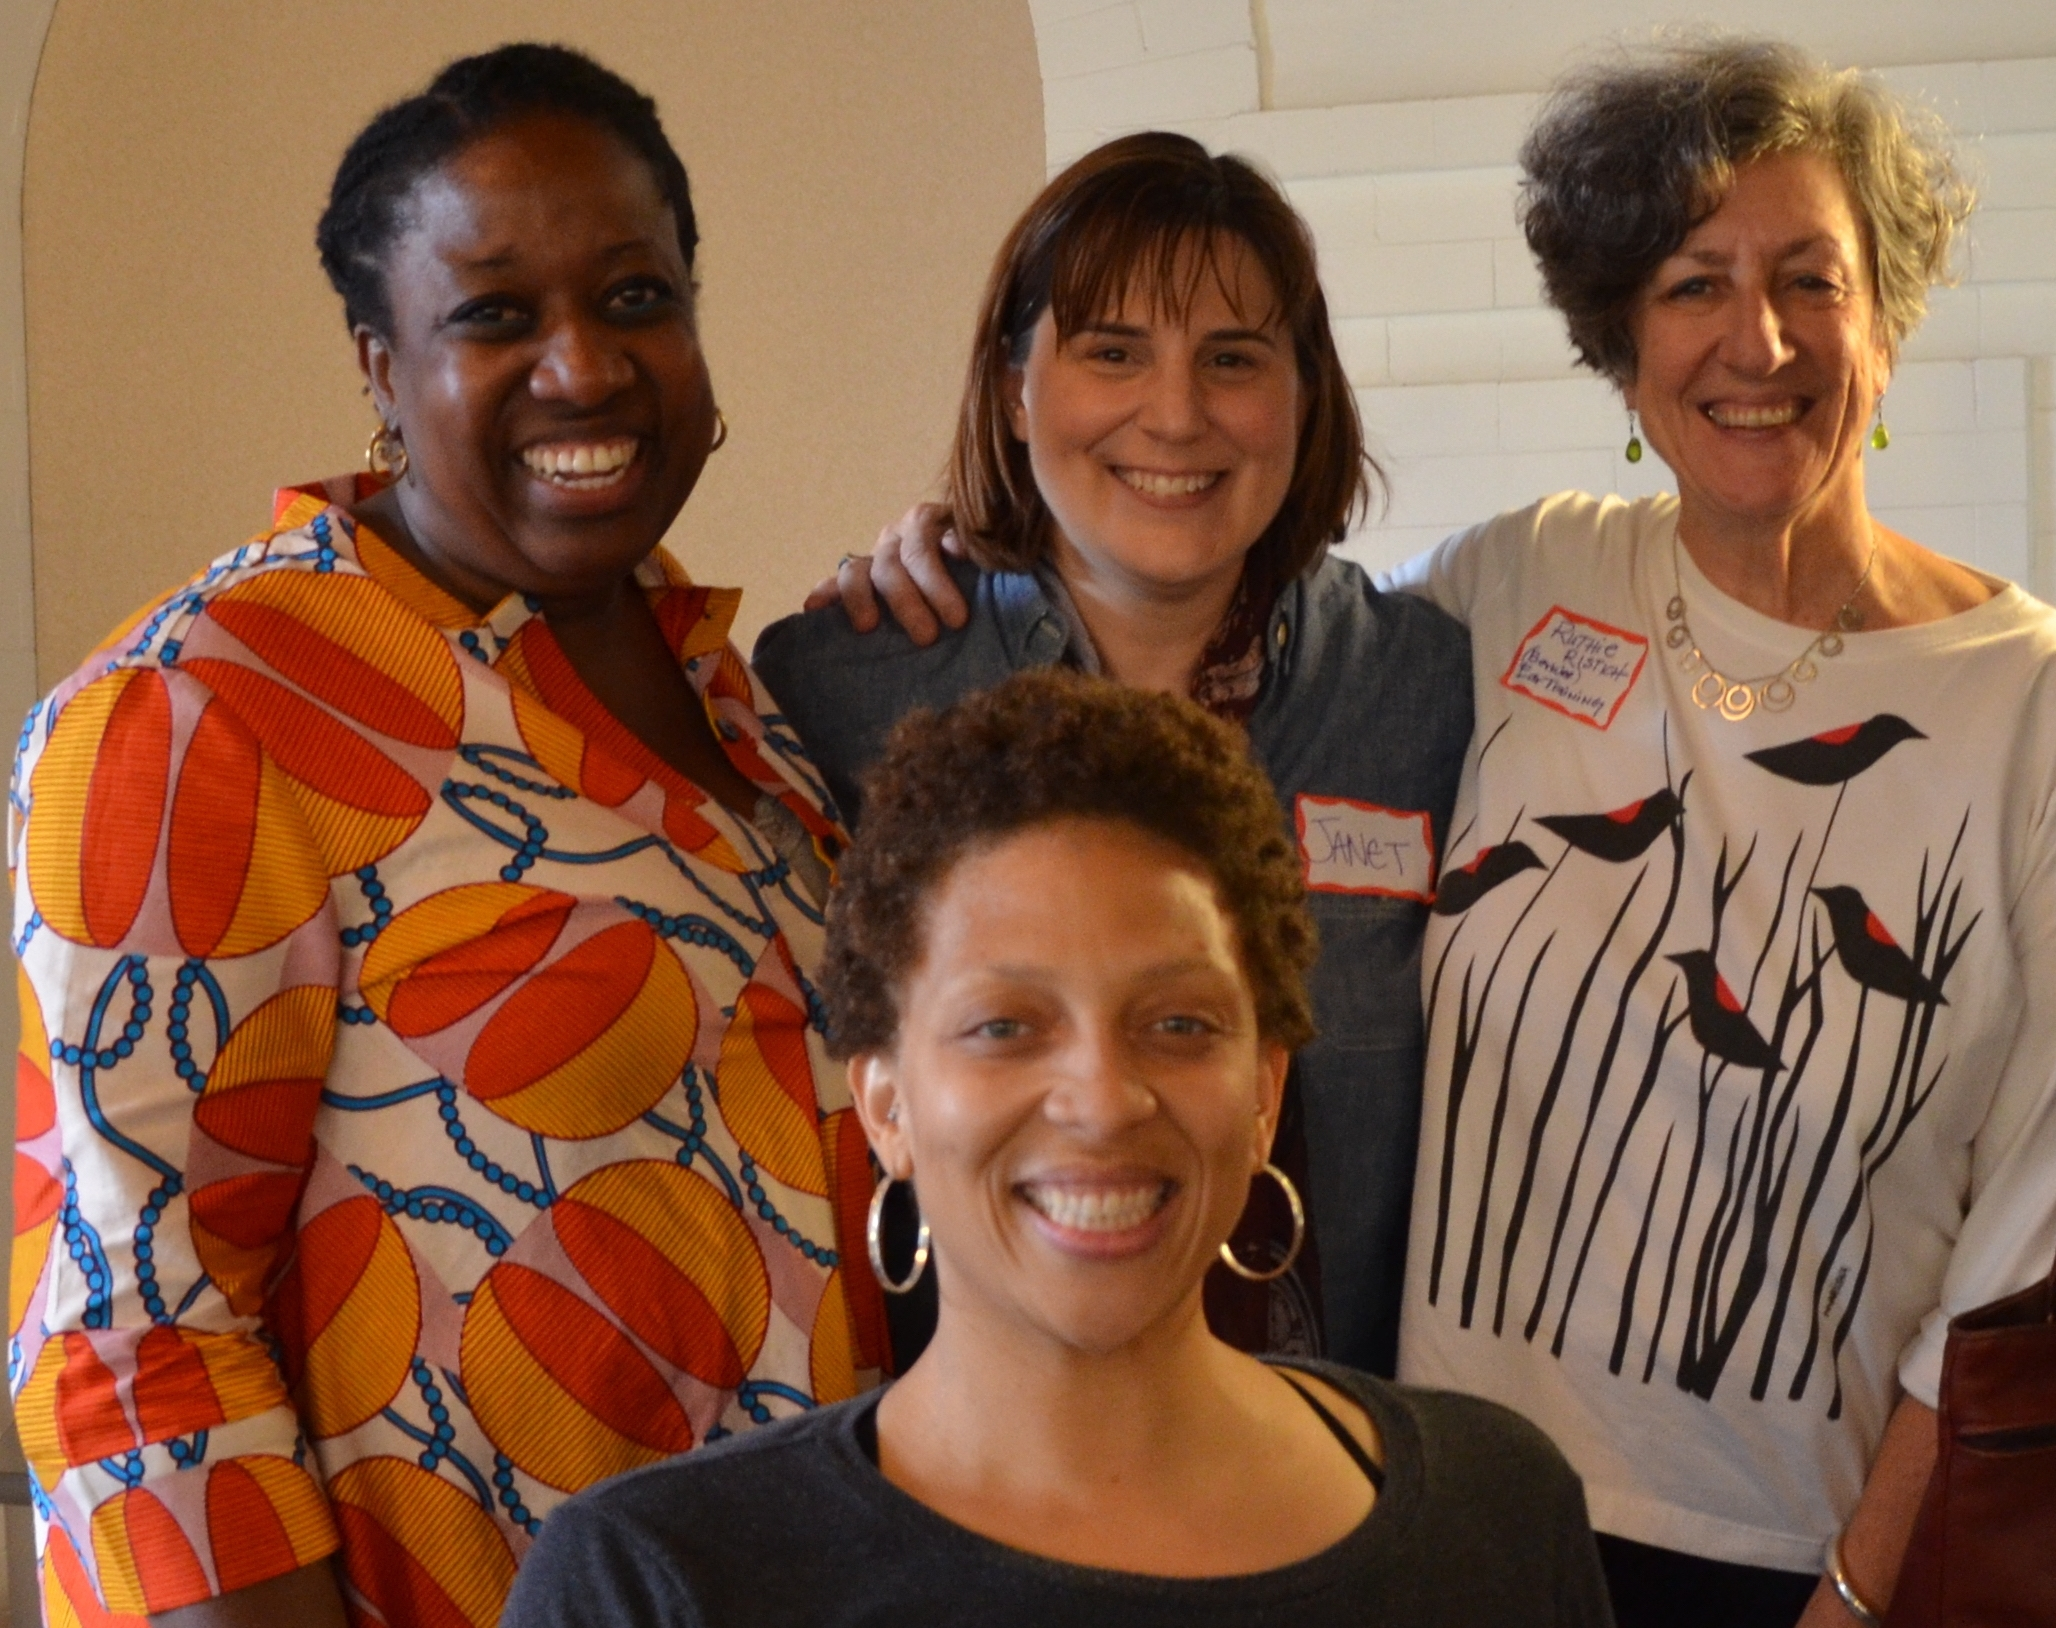 From the bell hooks discussion gathering. In back, Imani Wilson, Janet Chwalibog, and Ruthie Ristich. Madelyn Washington in front.